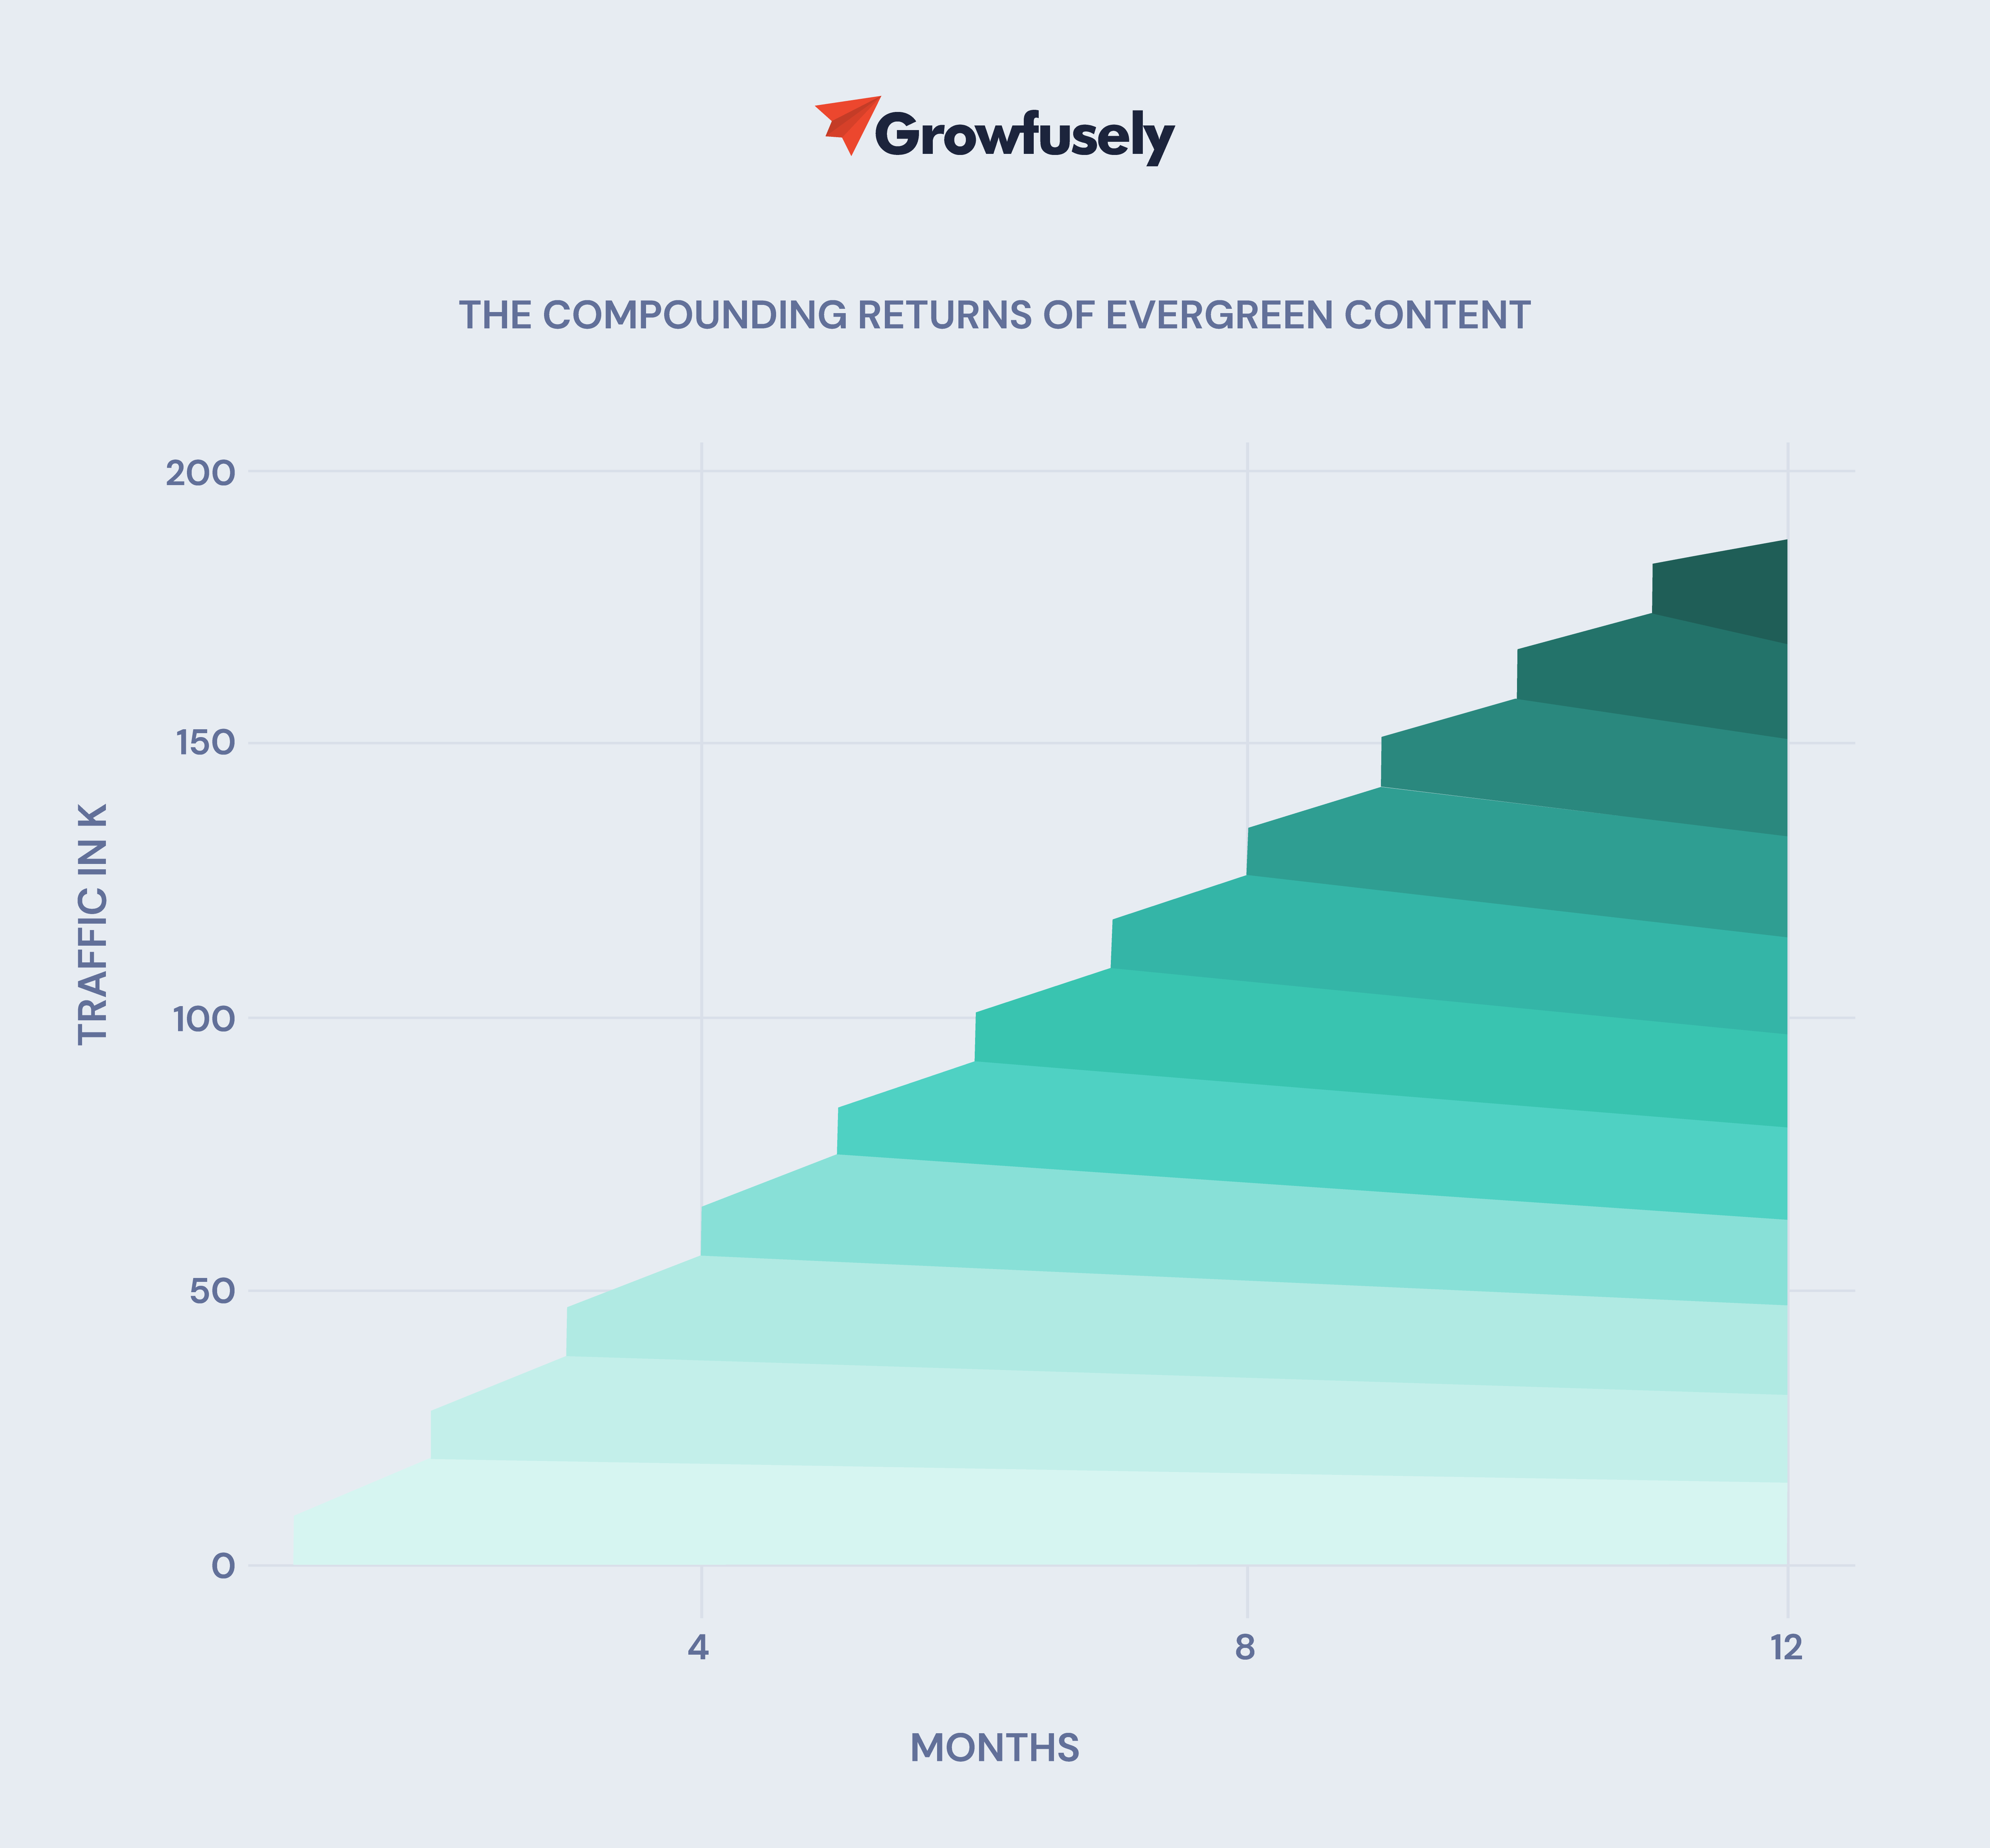 Compounding Returns of Evergreen Content